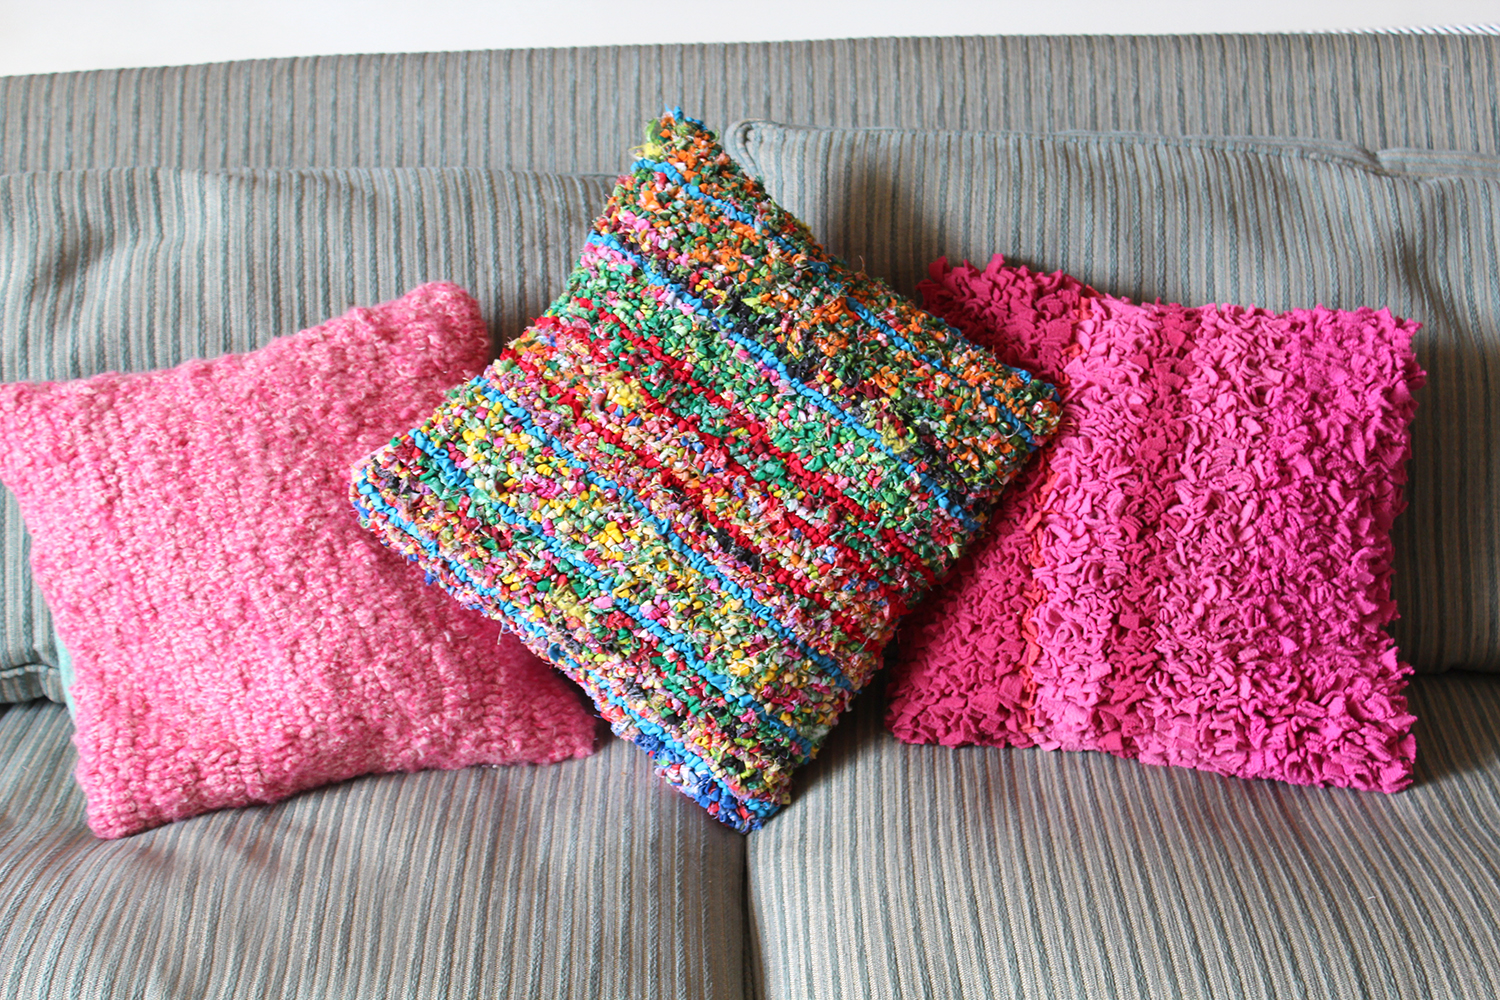 Pink and colourful hooked rag rug cushions on sofa